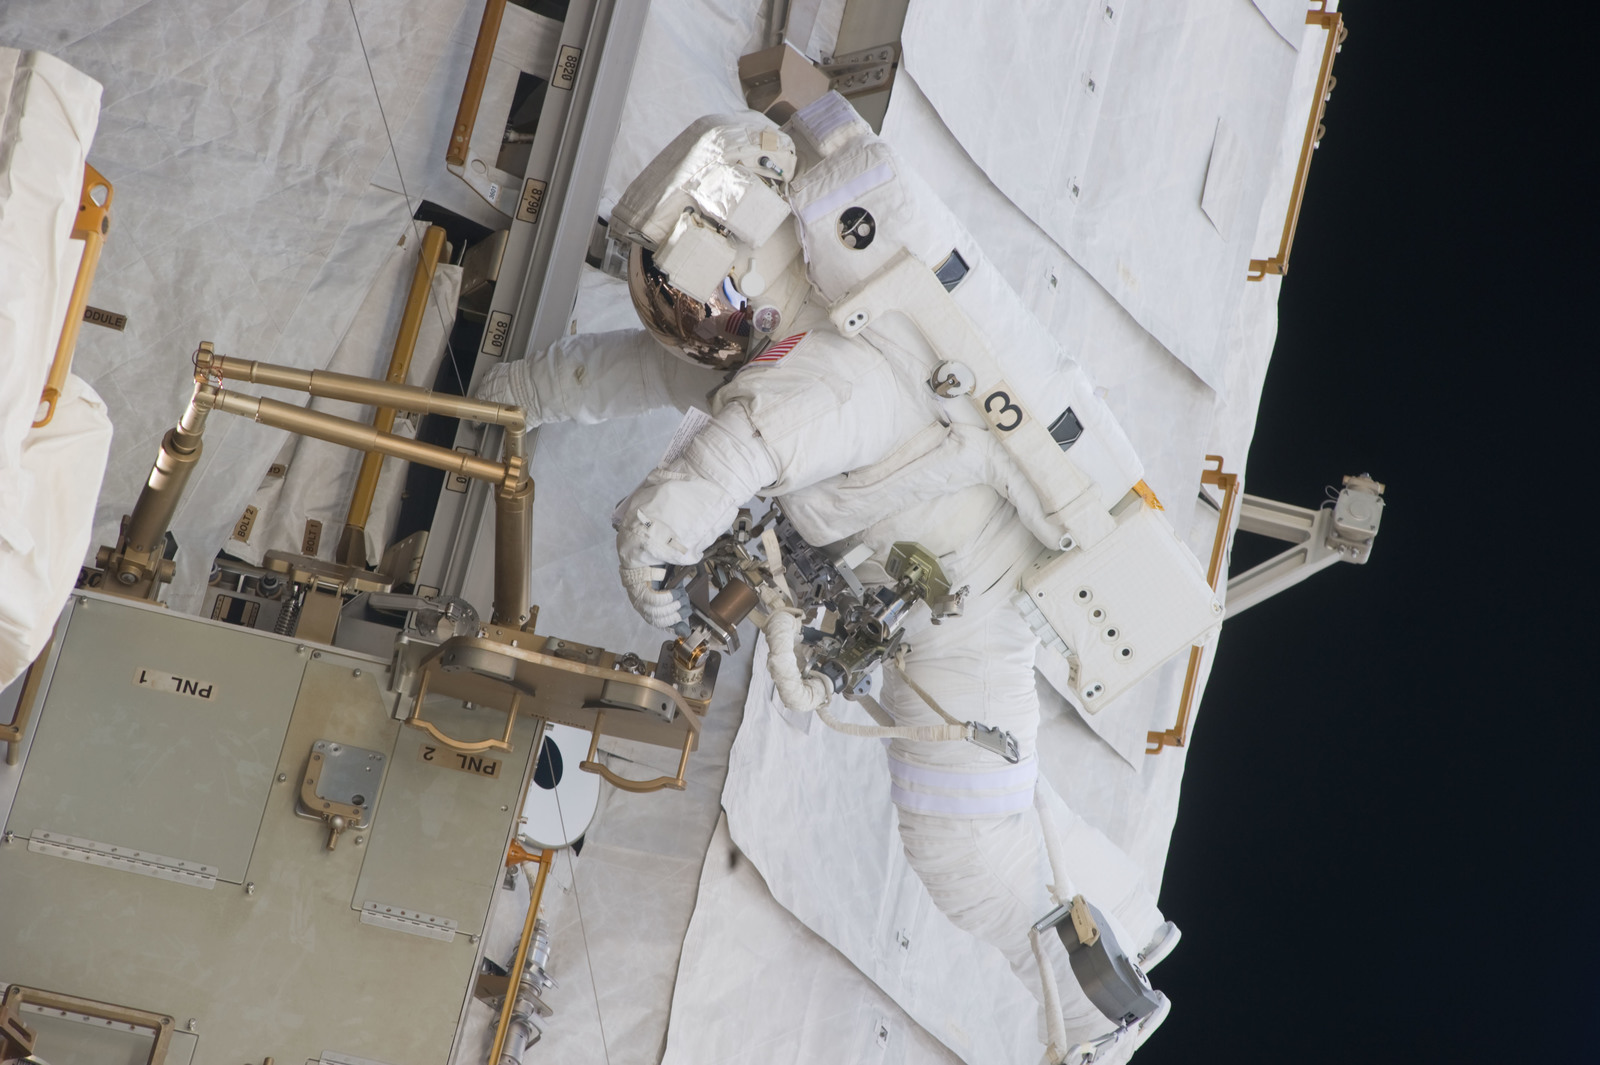 S134E009632 - STS-134 - View of STS-134 MS Fincke during EVA-4